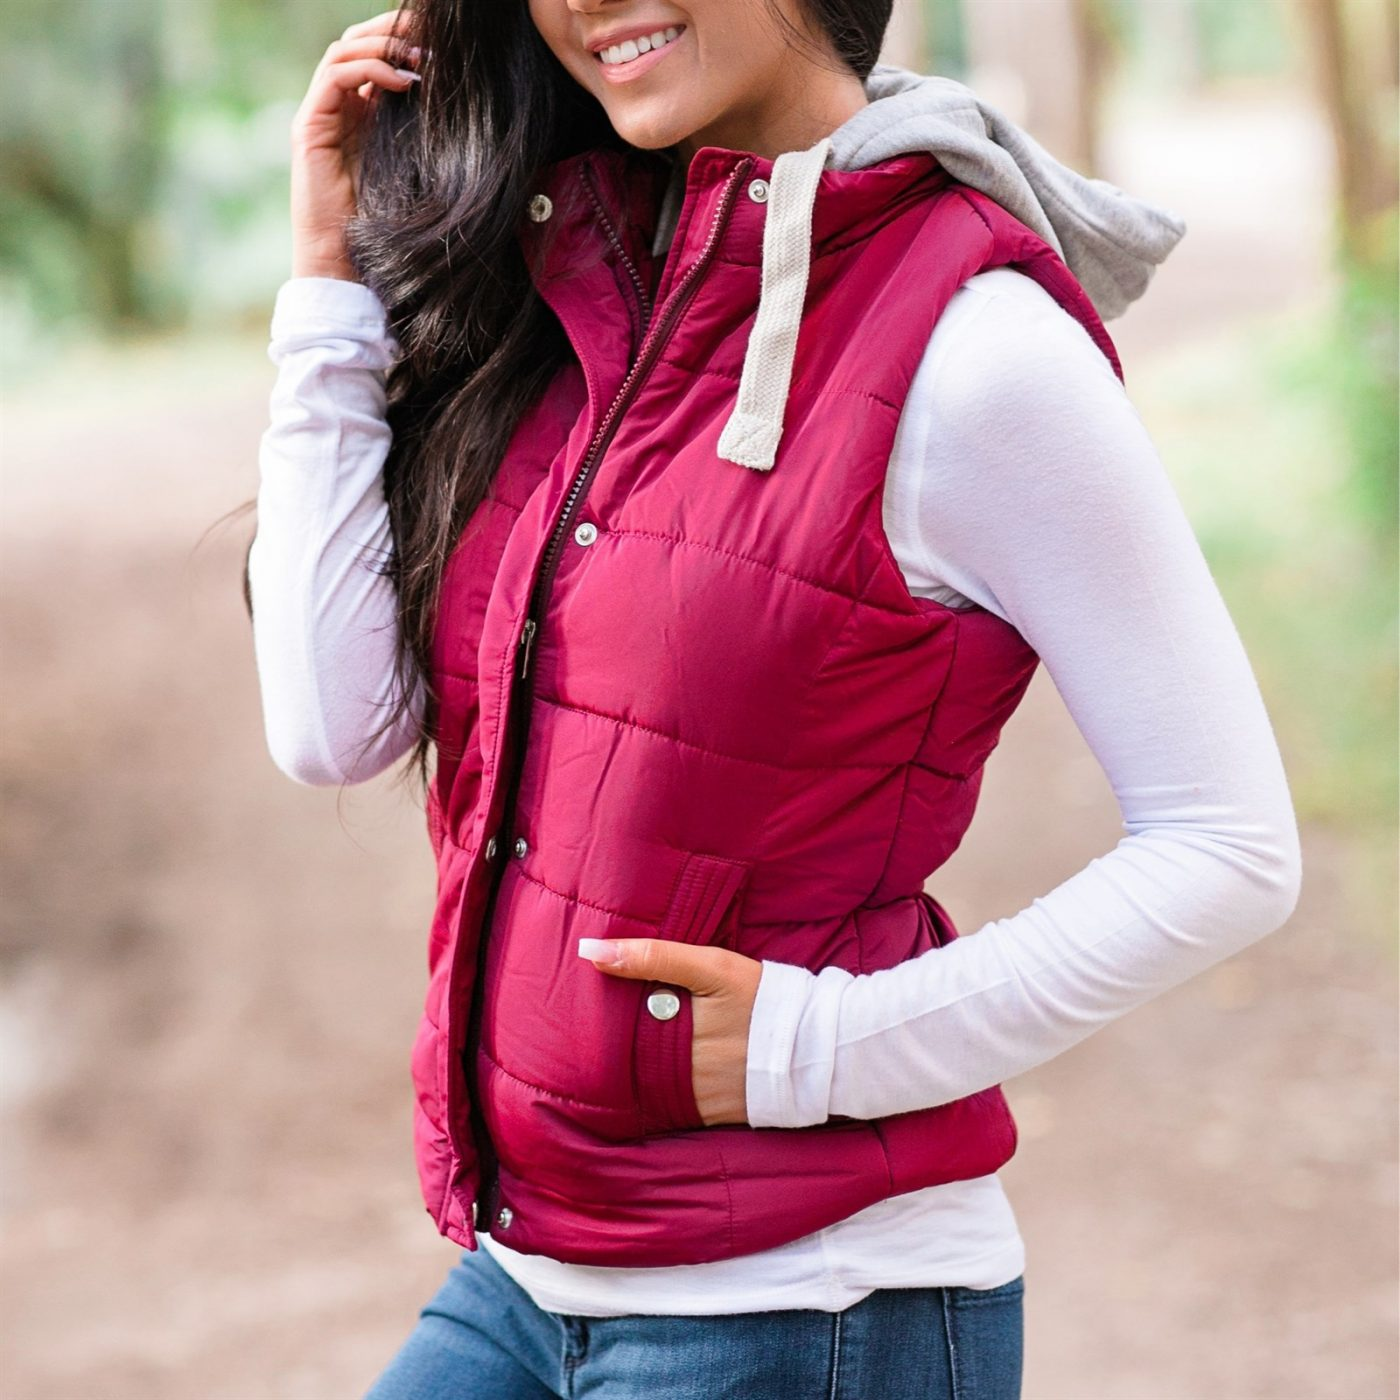 Was $54.99 - Now $26.99 - Quilted Padded Hooded Vest   Free Shipping (10/15 to 10/17)